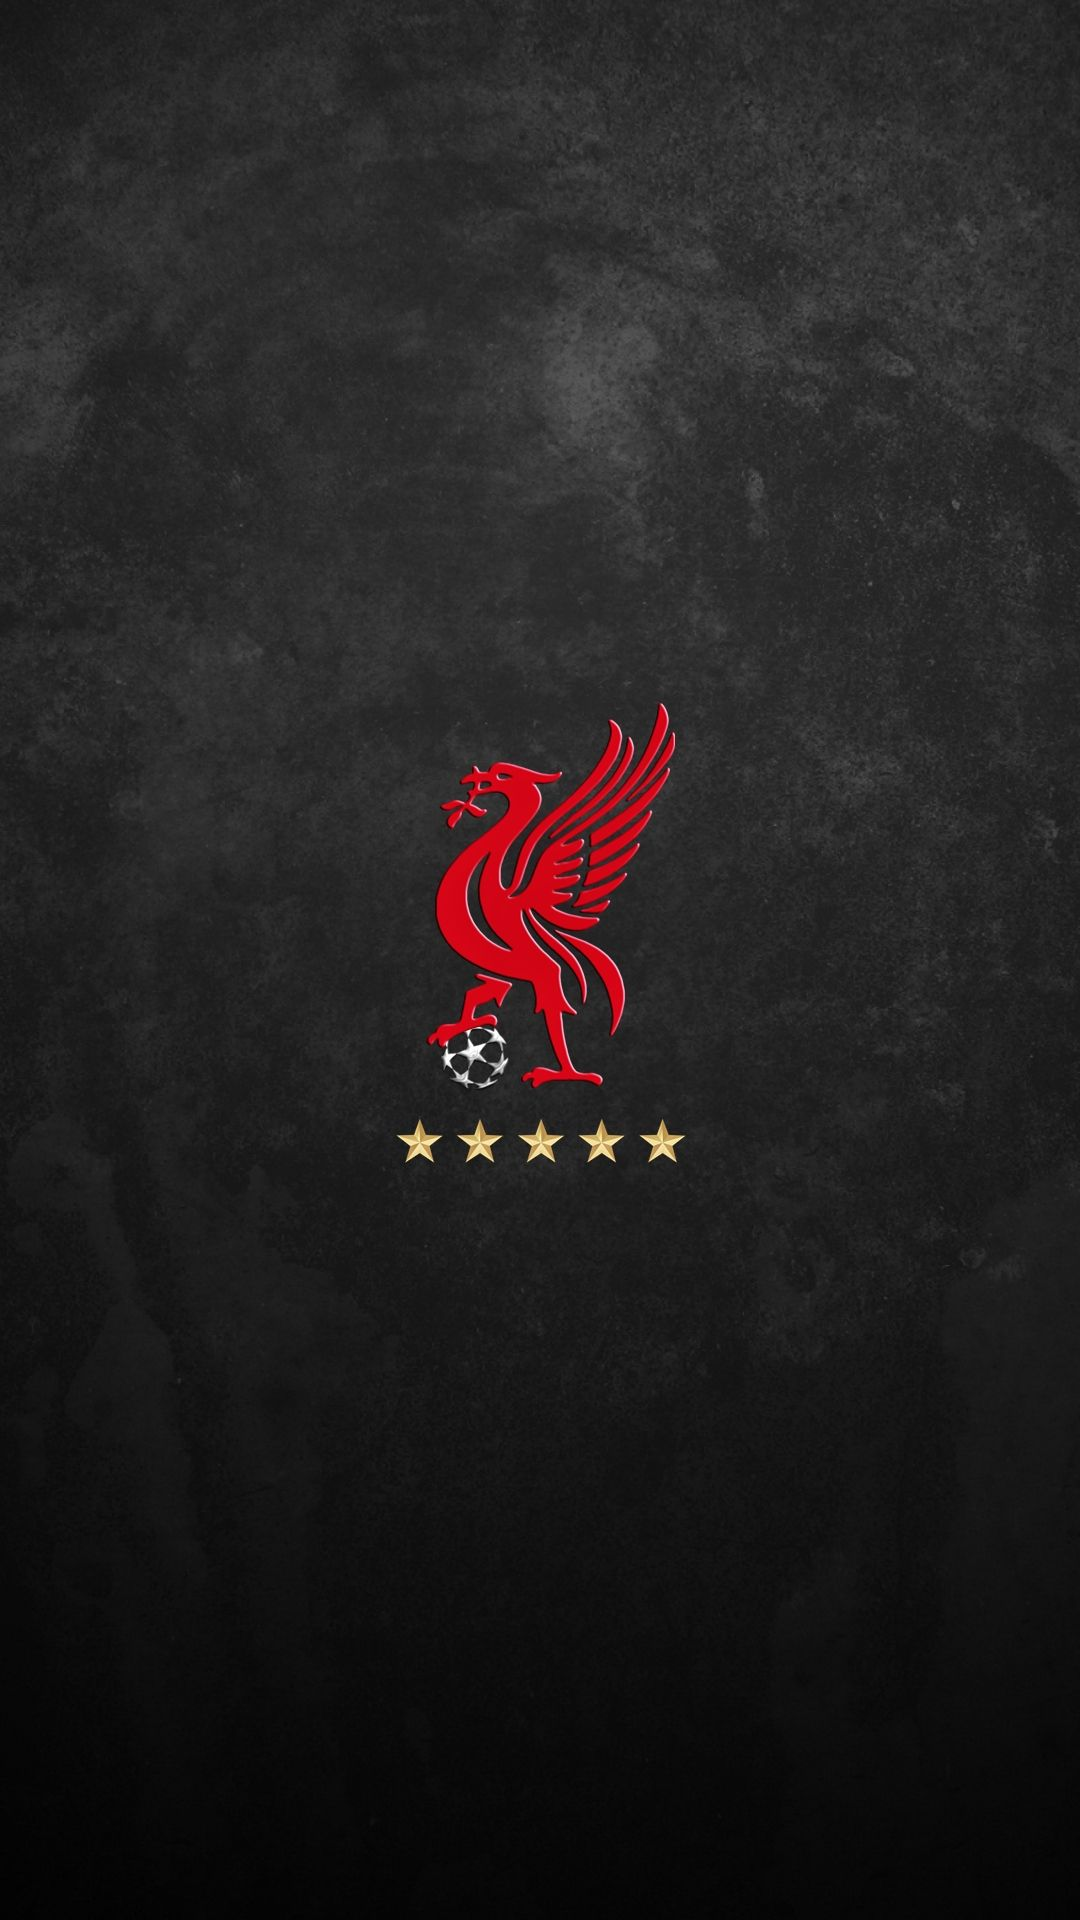 Liverpool Logo 3023865 Hd Wallpaper Backgrounds Download